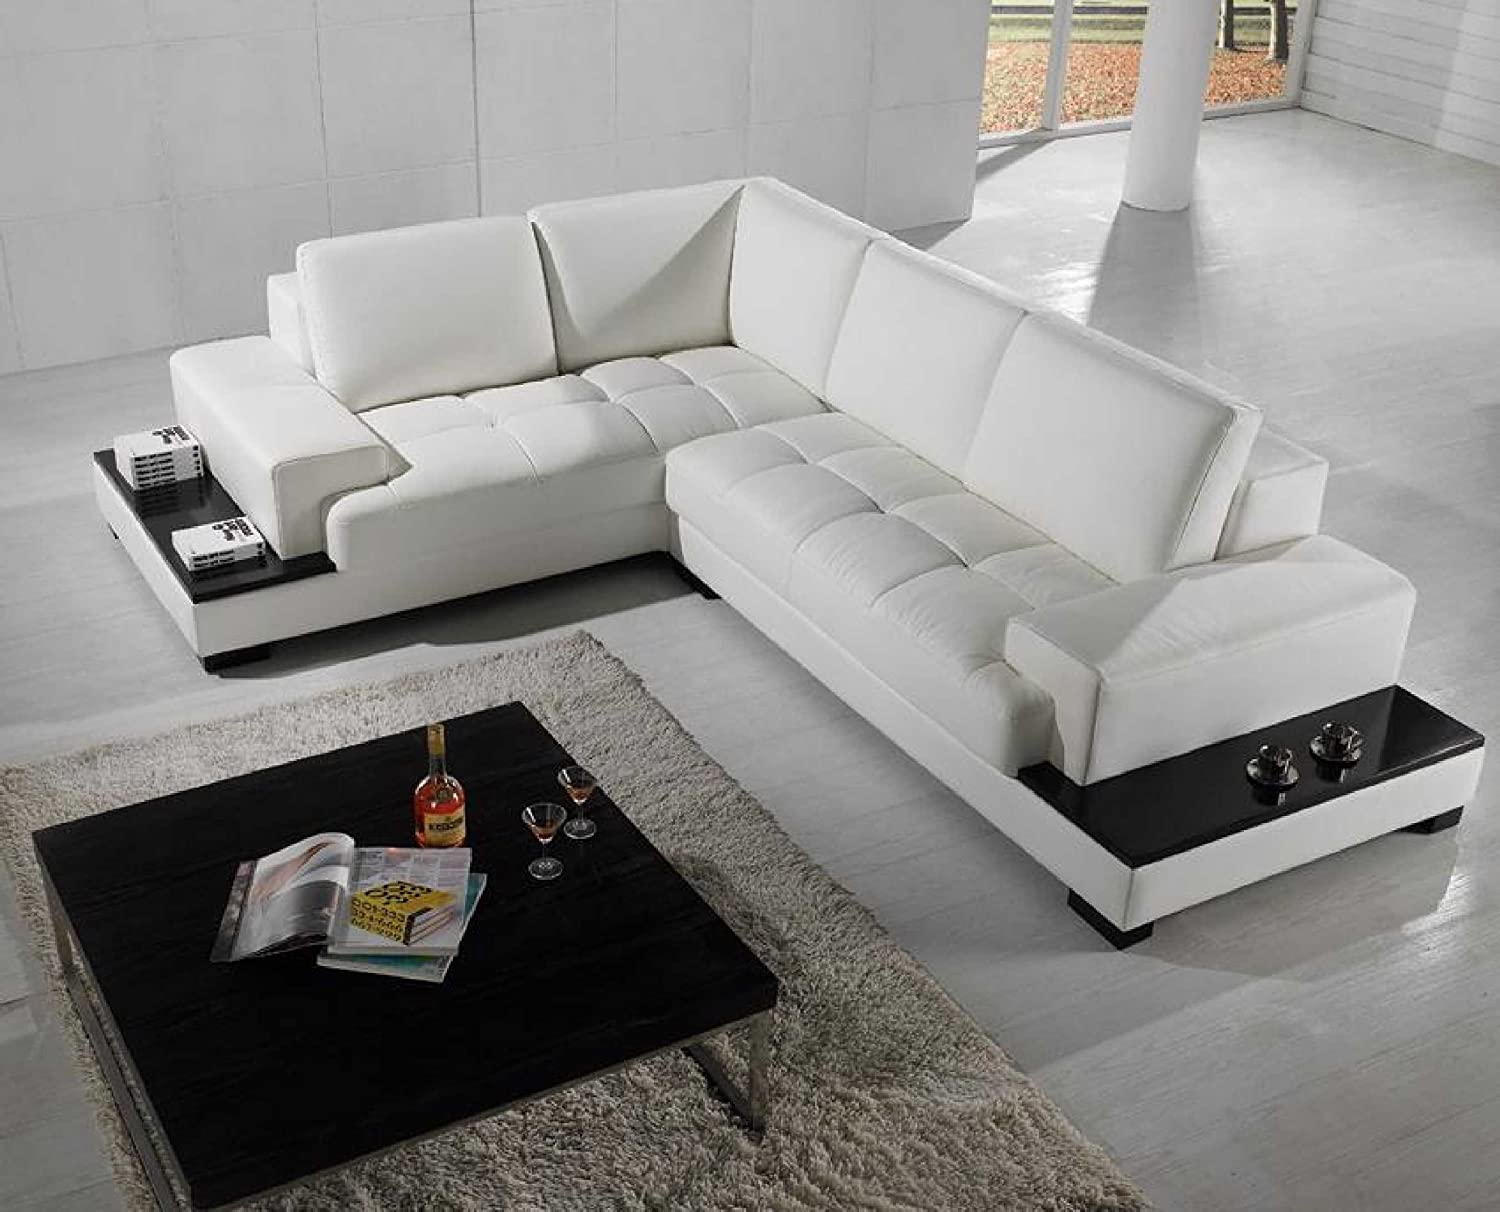 Amazon.com Vig Furniture T71 Modern Leather Sectional Kitchen u0026 Dining : modern sectional - Sectionals, Sofas & Couches